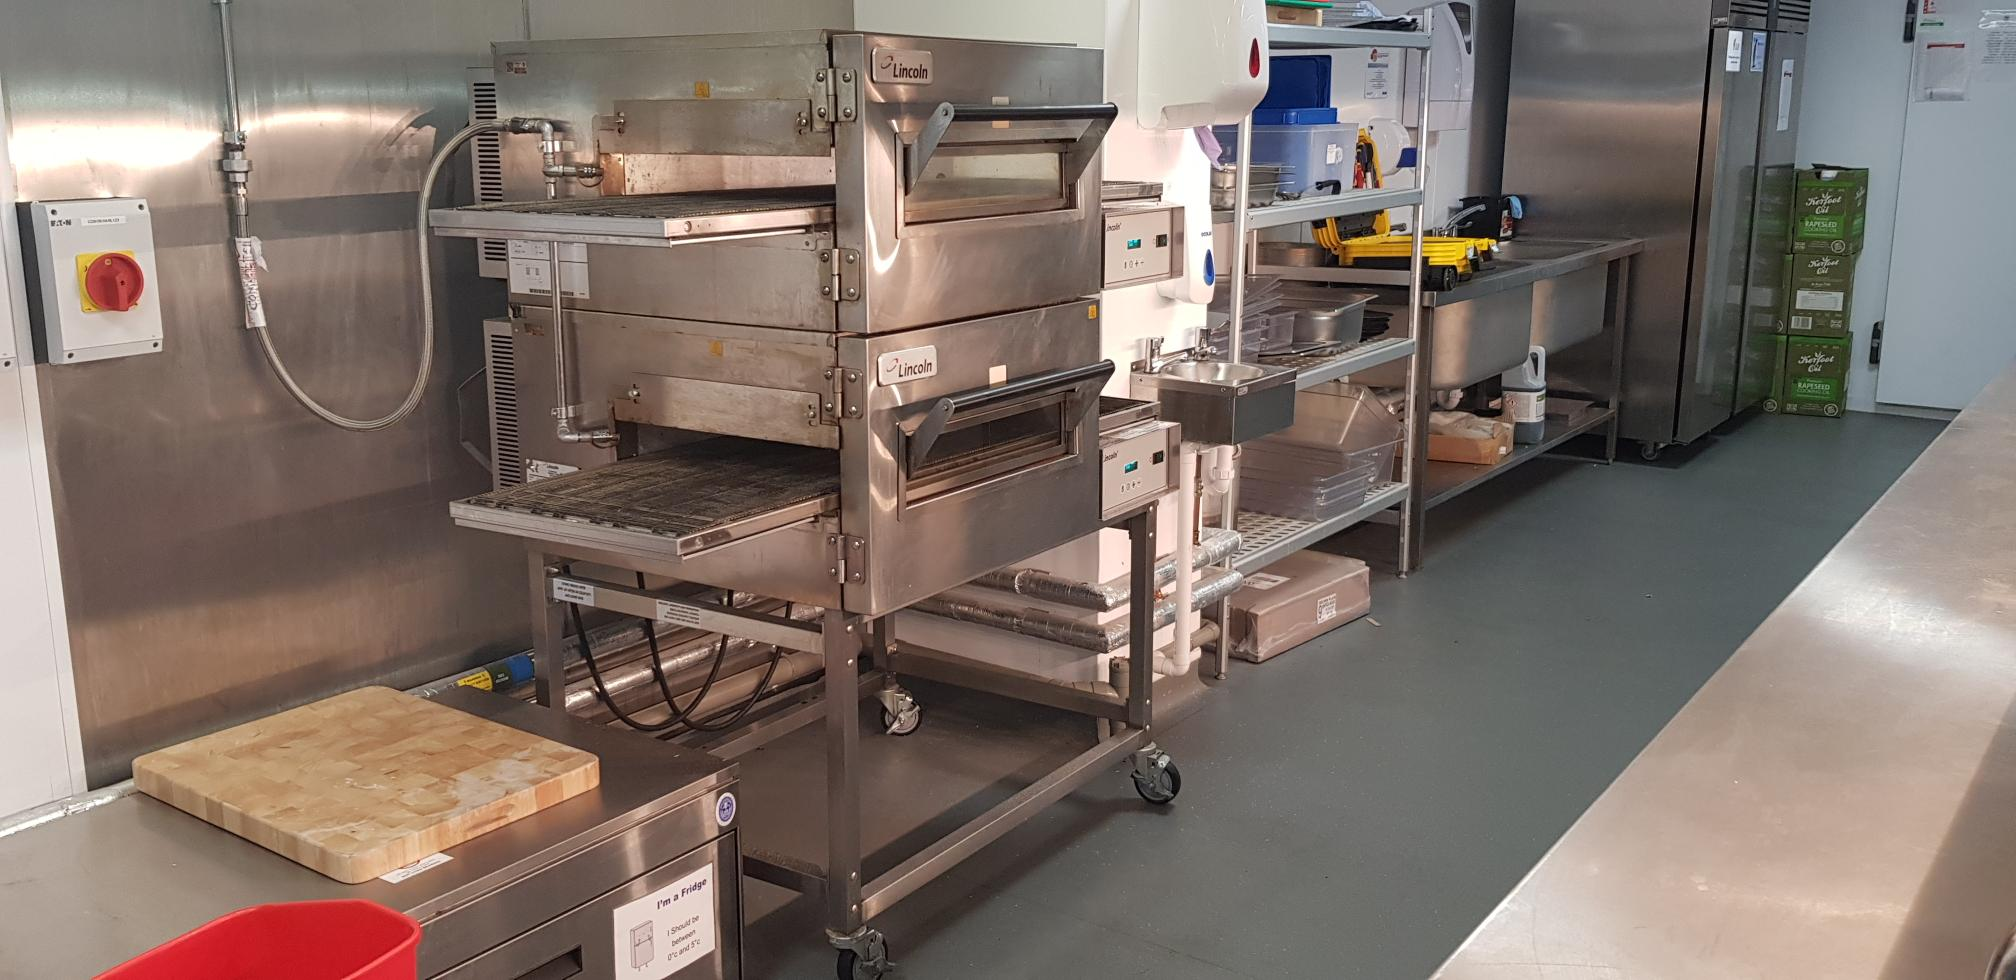 Service 2 - Anfield Liverpool FC catering 5